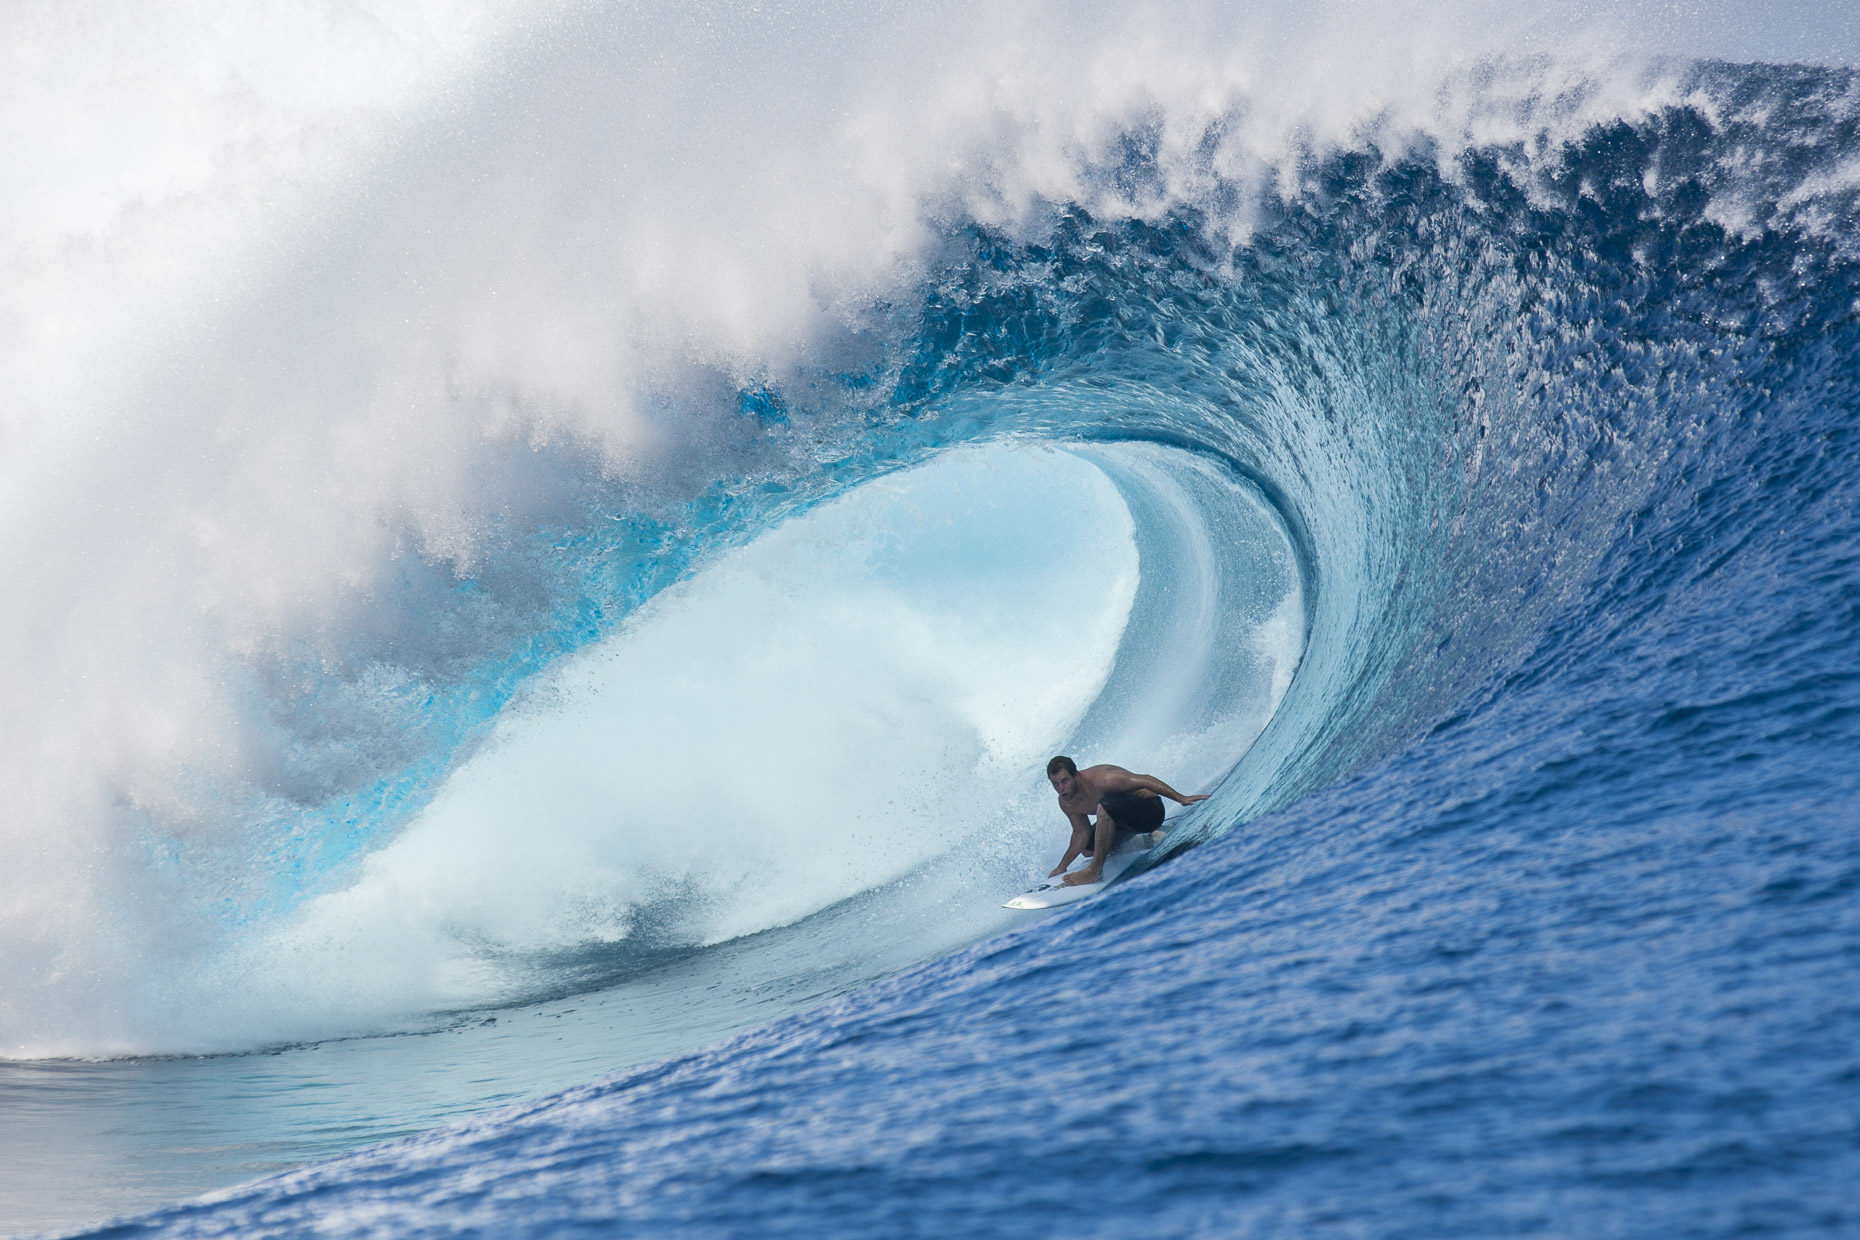 Ryan Hipwood -Cloudbreak